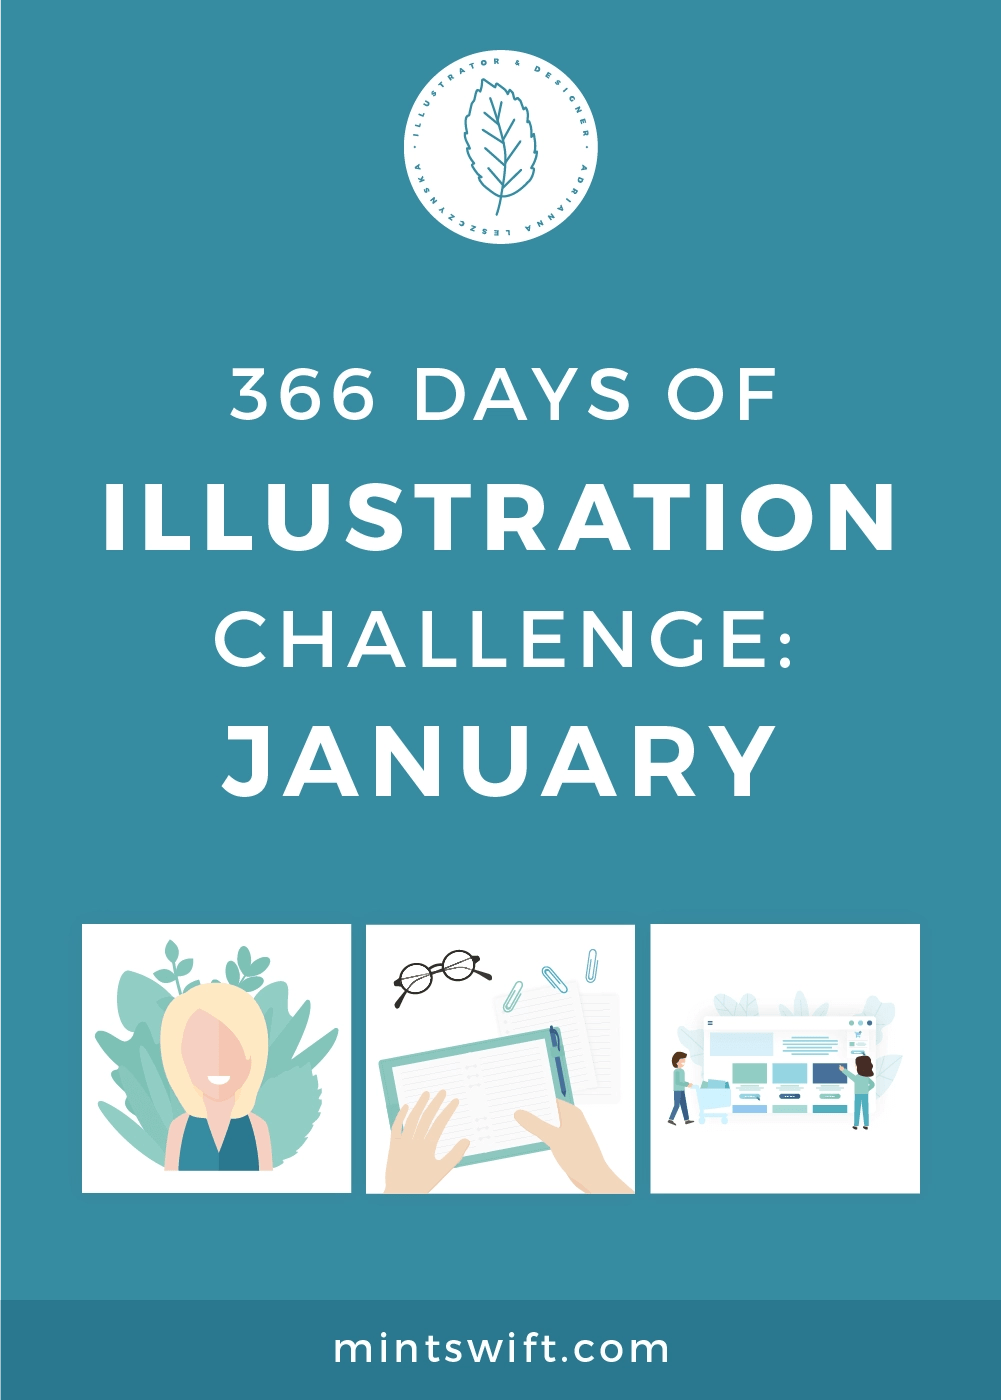 366 Days of Illustration Challenge - January by MintSwift. The first month of illustration challenge, so day 1-31. Vector illustrations in flat design style